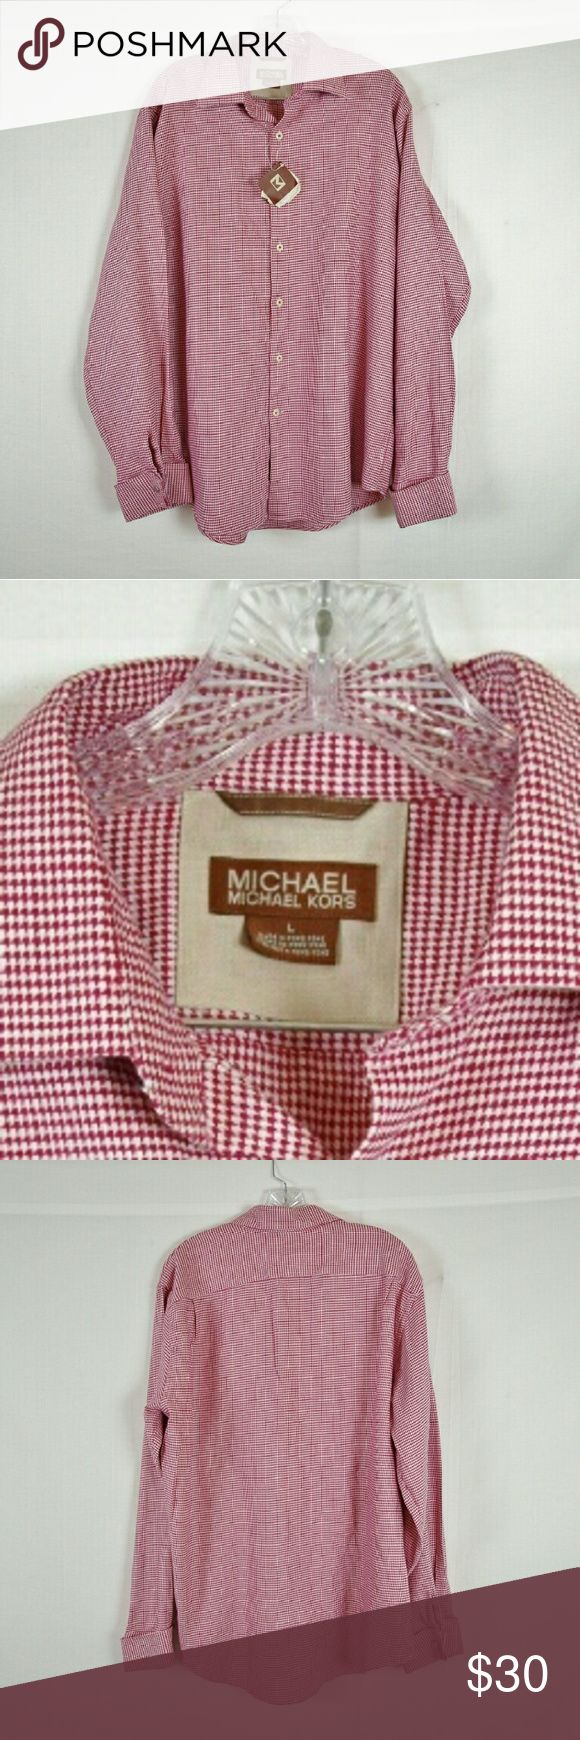 """Mens Michael Kors Red Houndstooth Shirt Size L Armpit to armpit 25"""" & length 32.5"""". Material 100% cotton. Add to a bundle to receive 20% off 3 or more items. Offers welcomed. bin g7 MICHAEL Michael Kors Shirts"""